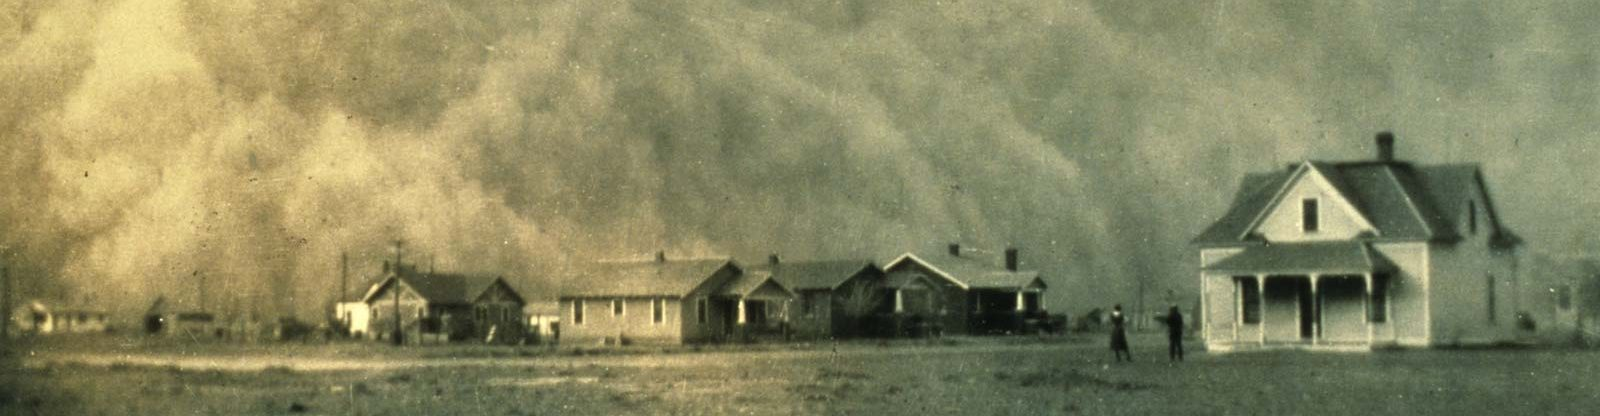 The Dust Bowl: Narratives of a Disaster